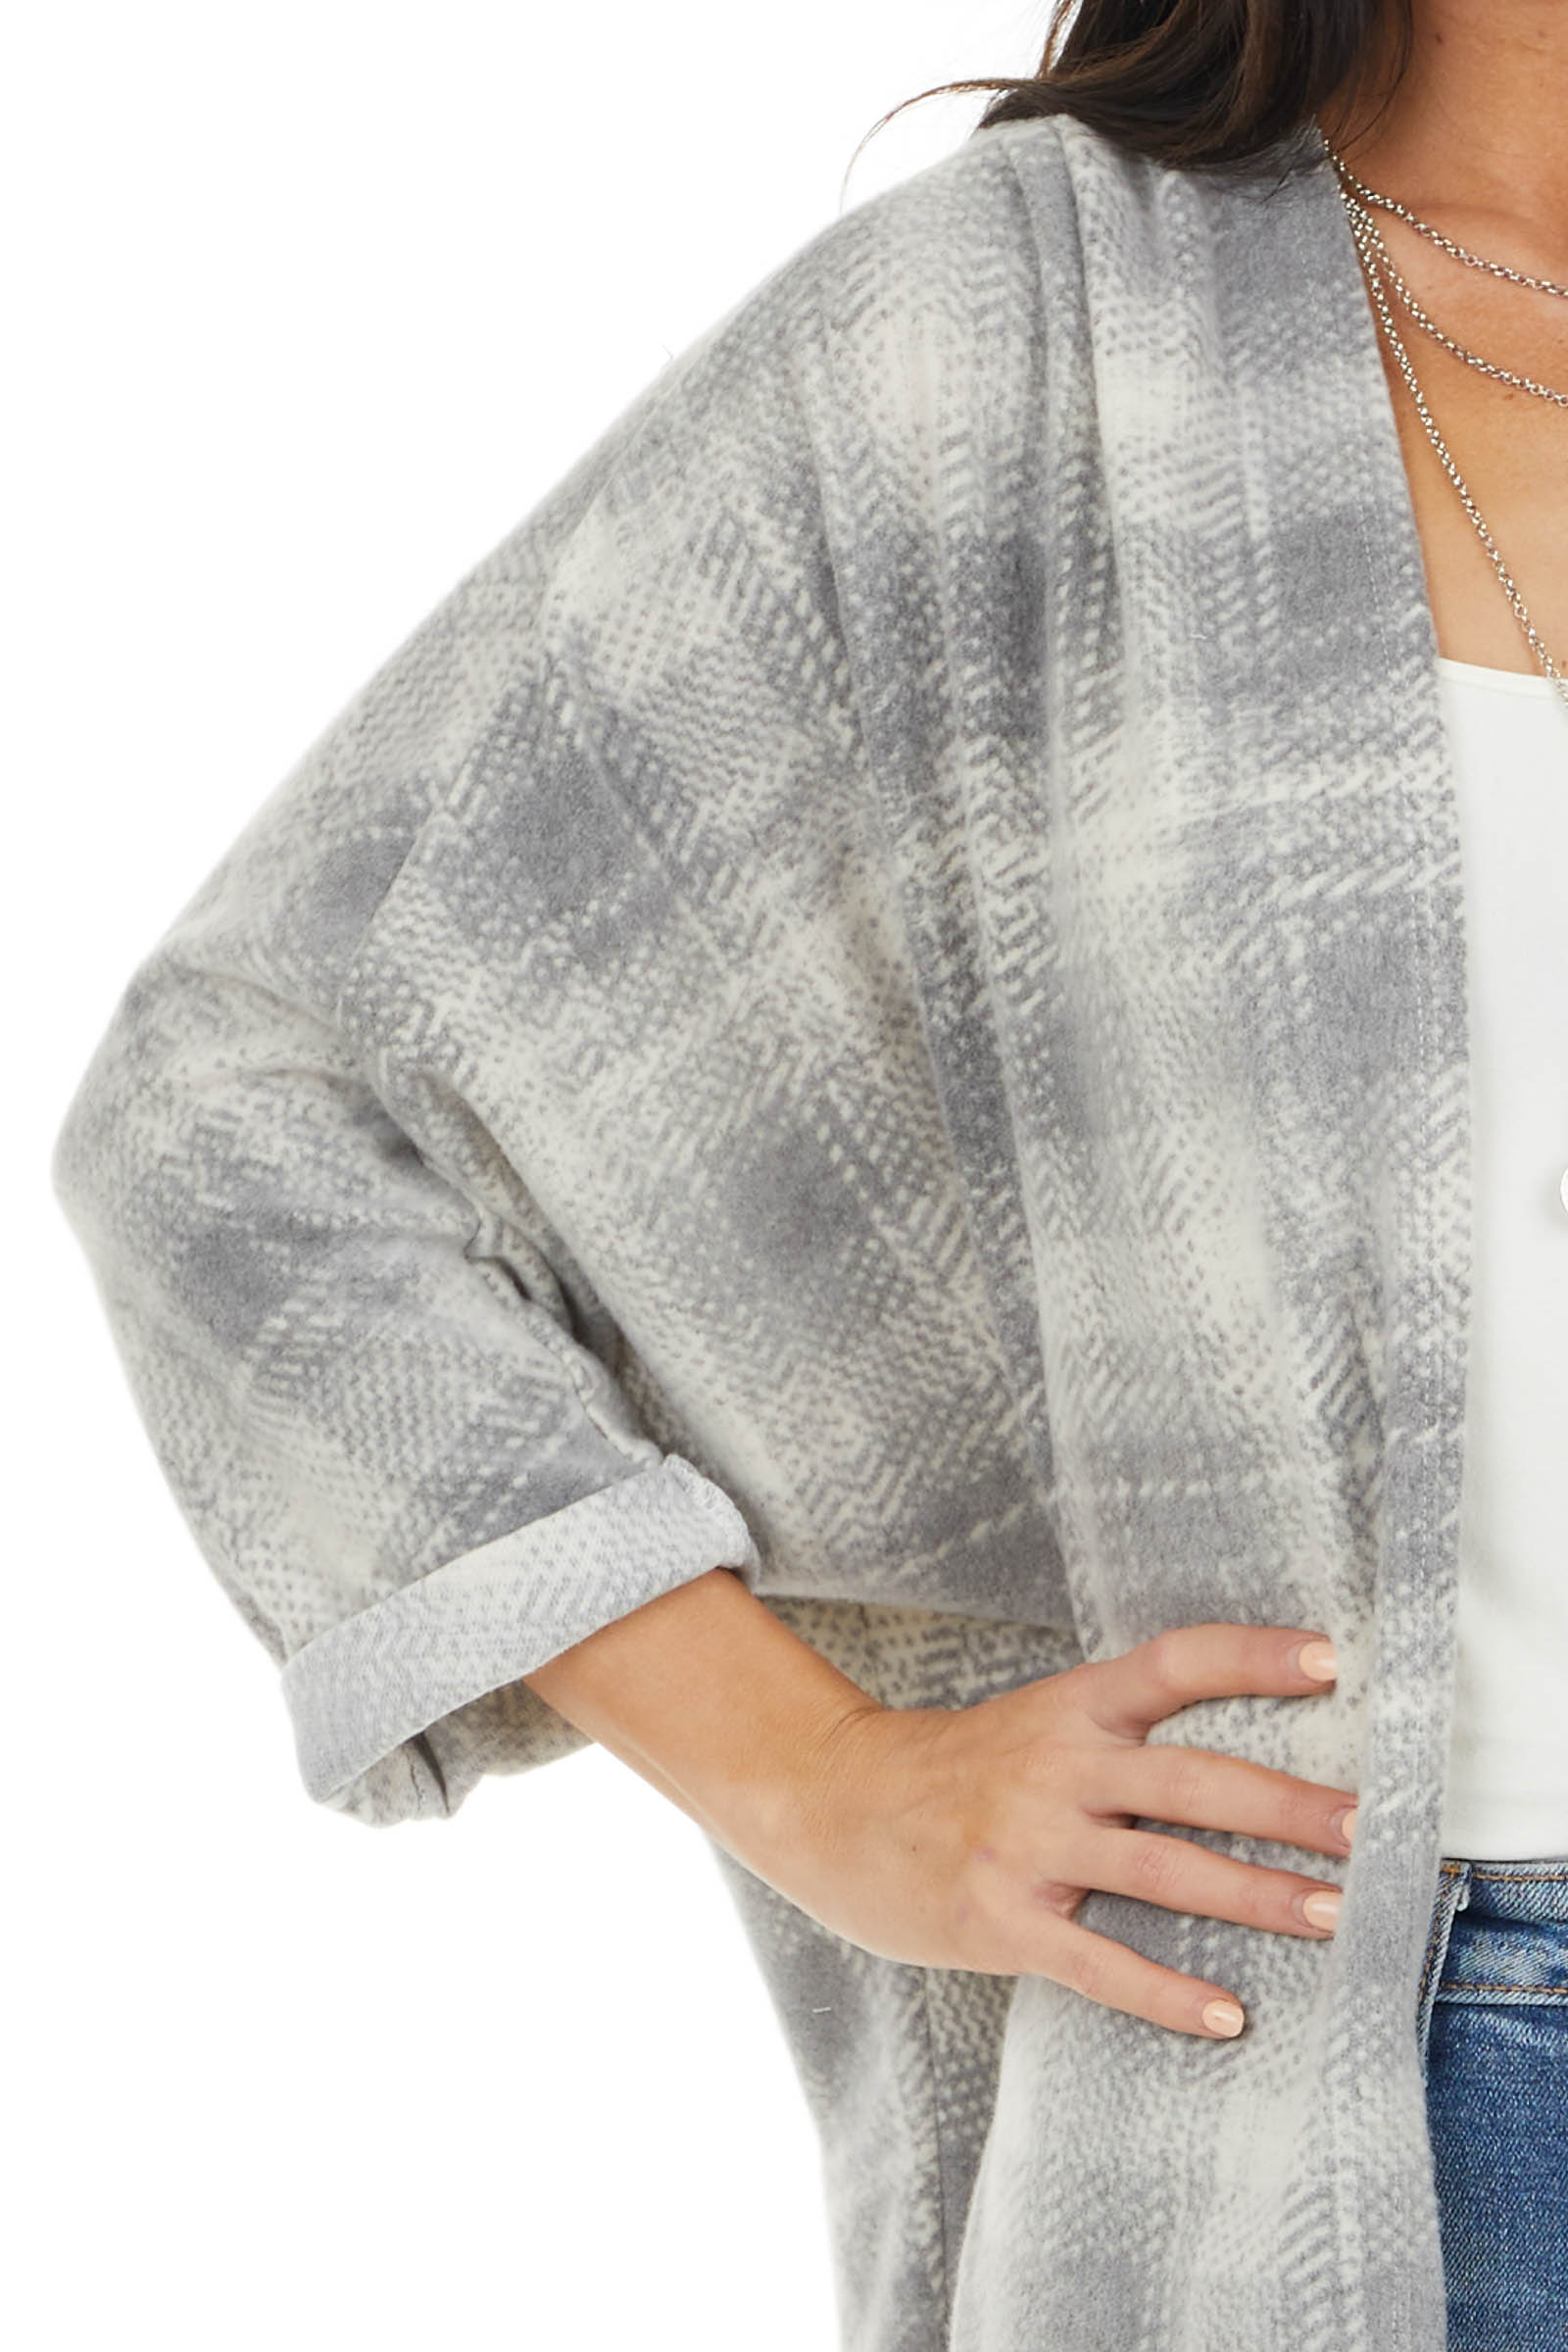 Ash and Ivory Plaid Cardigan with 3/4 Length Dolman Sleeves